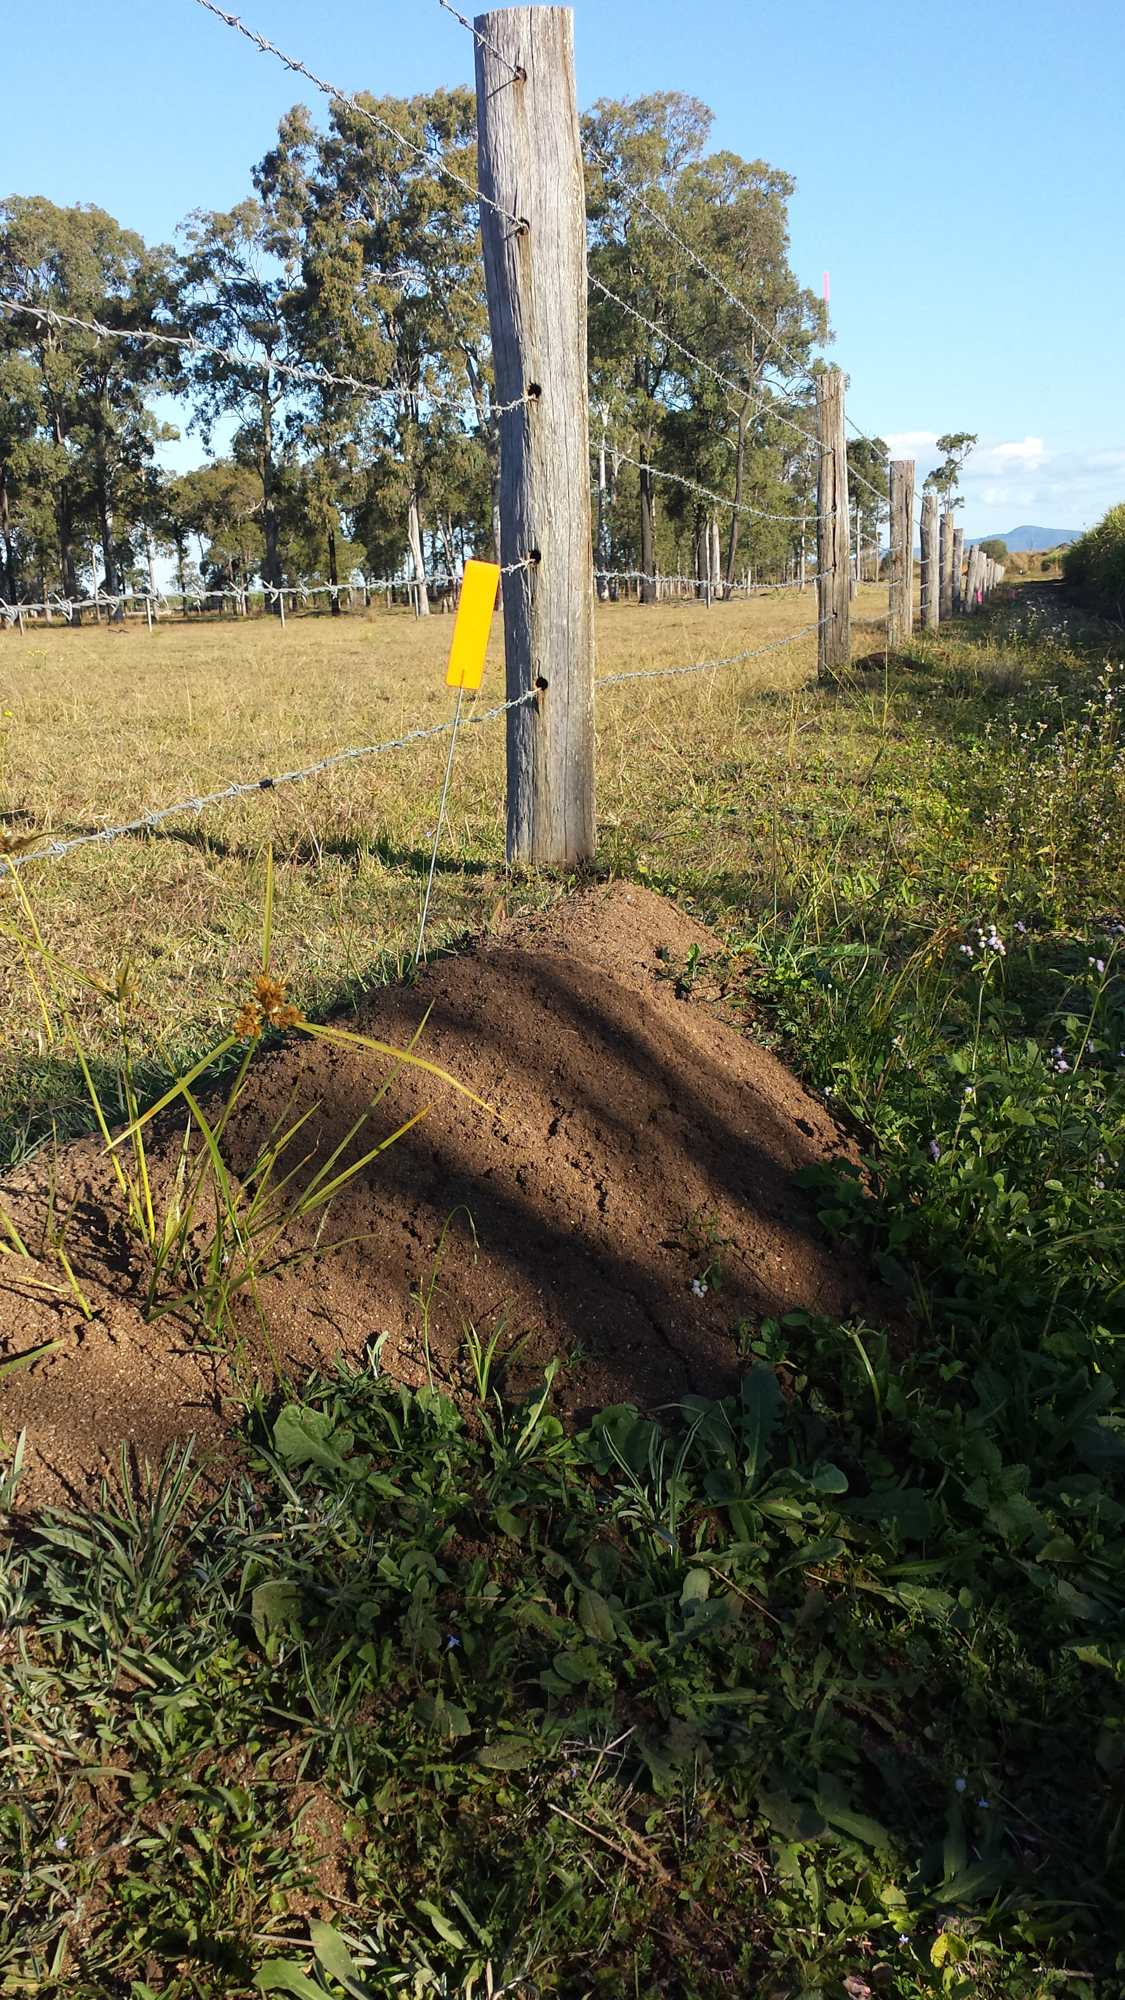 Biosecurity Queensland removing ID tags from untreated fire ant nests. Covering-up evidence of failure?